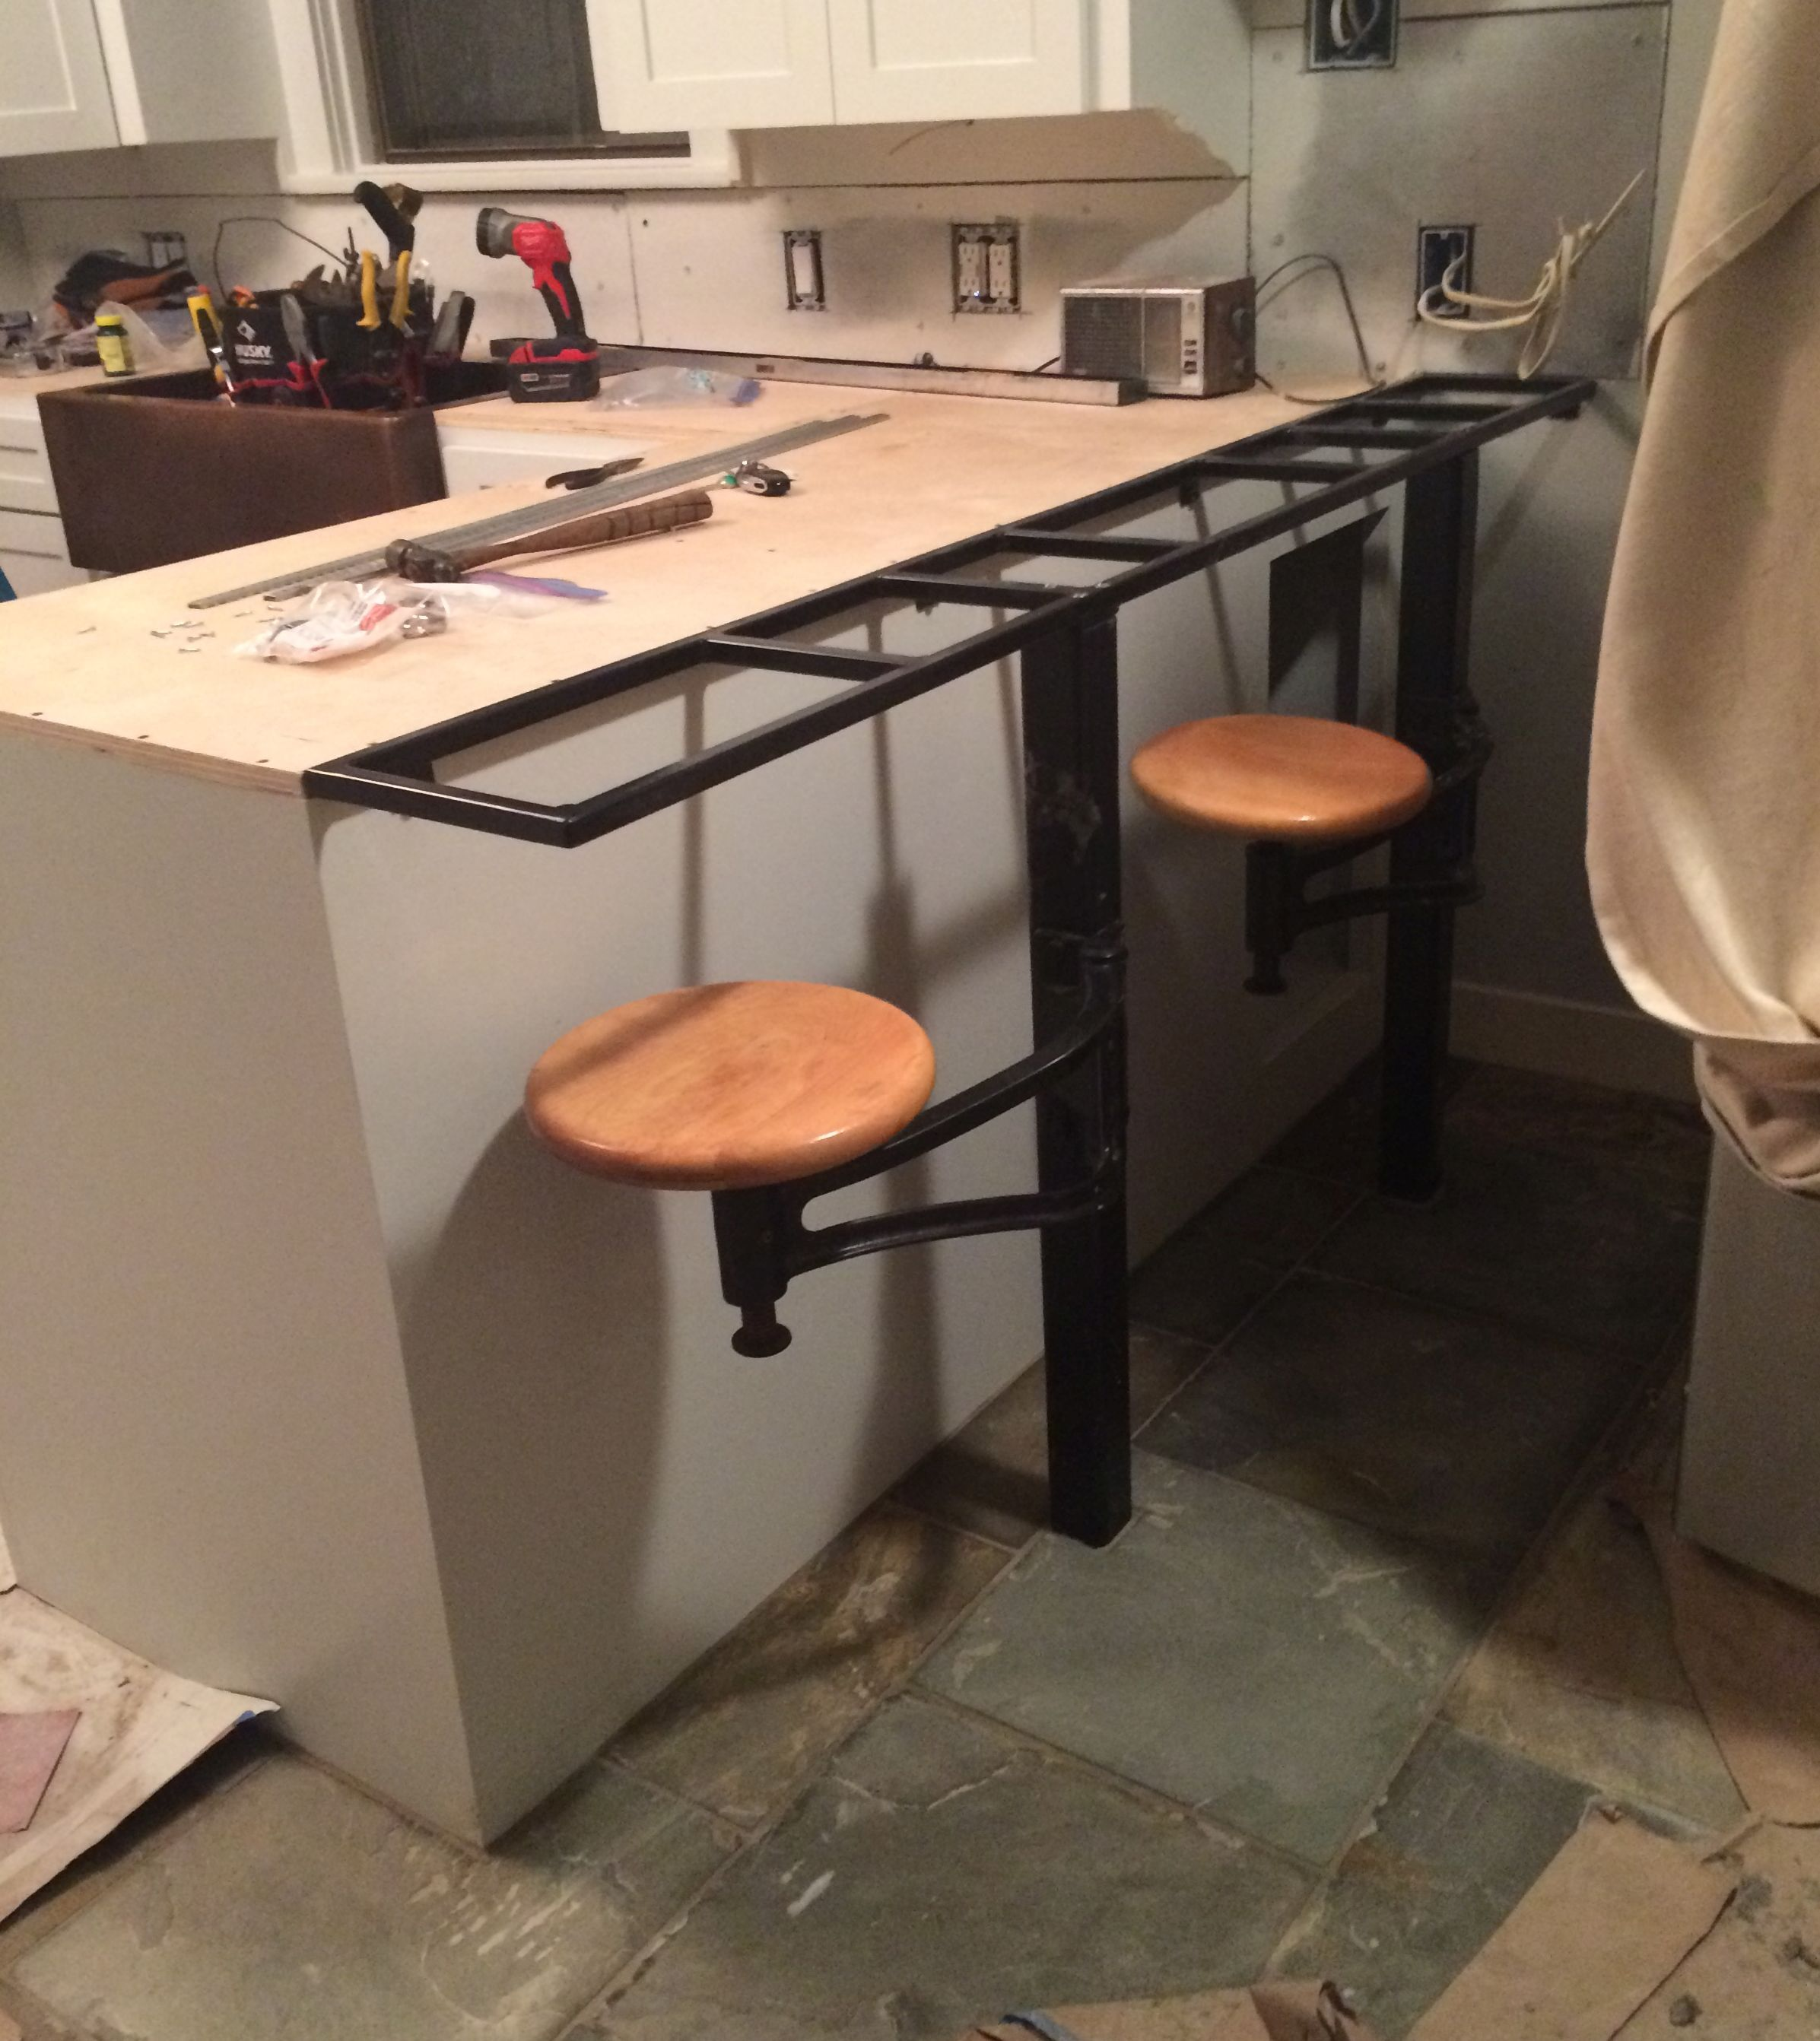 Welded Frame That Supports Countertop Overhang And Stools In Our Kitchen Kitchen Dinning Room Kitchen Solutions Stools For Kitchen Island